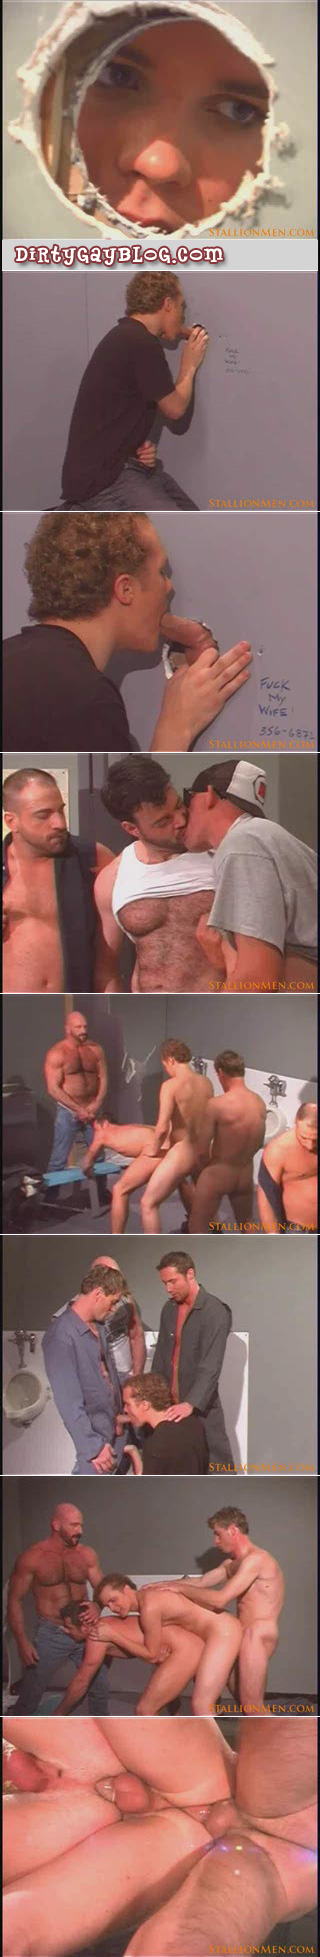 Horny butch bears have group gay sex in the truck stop bathroom.